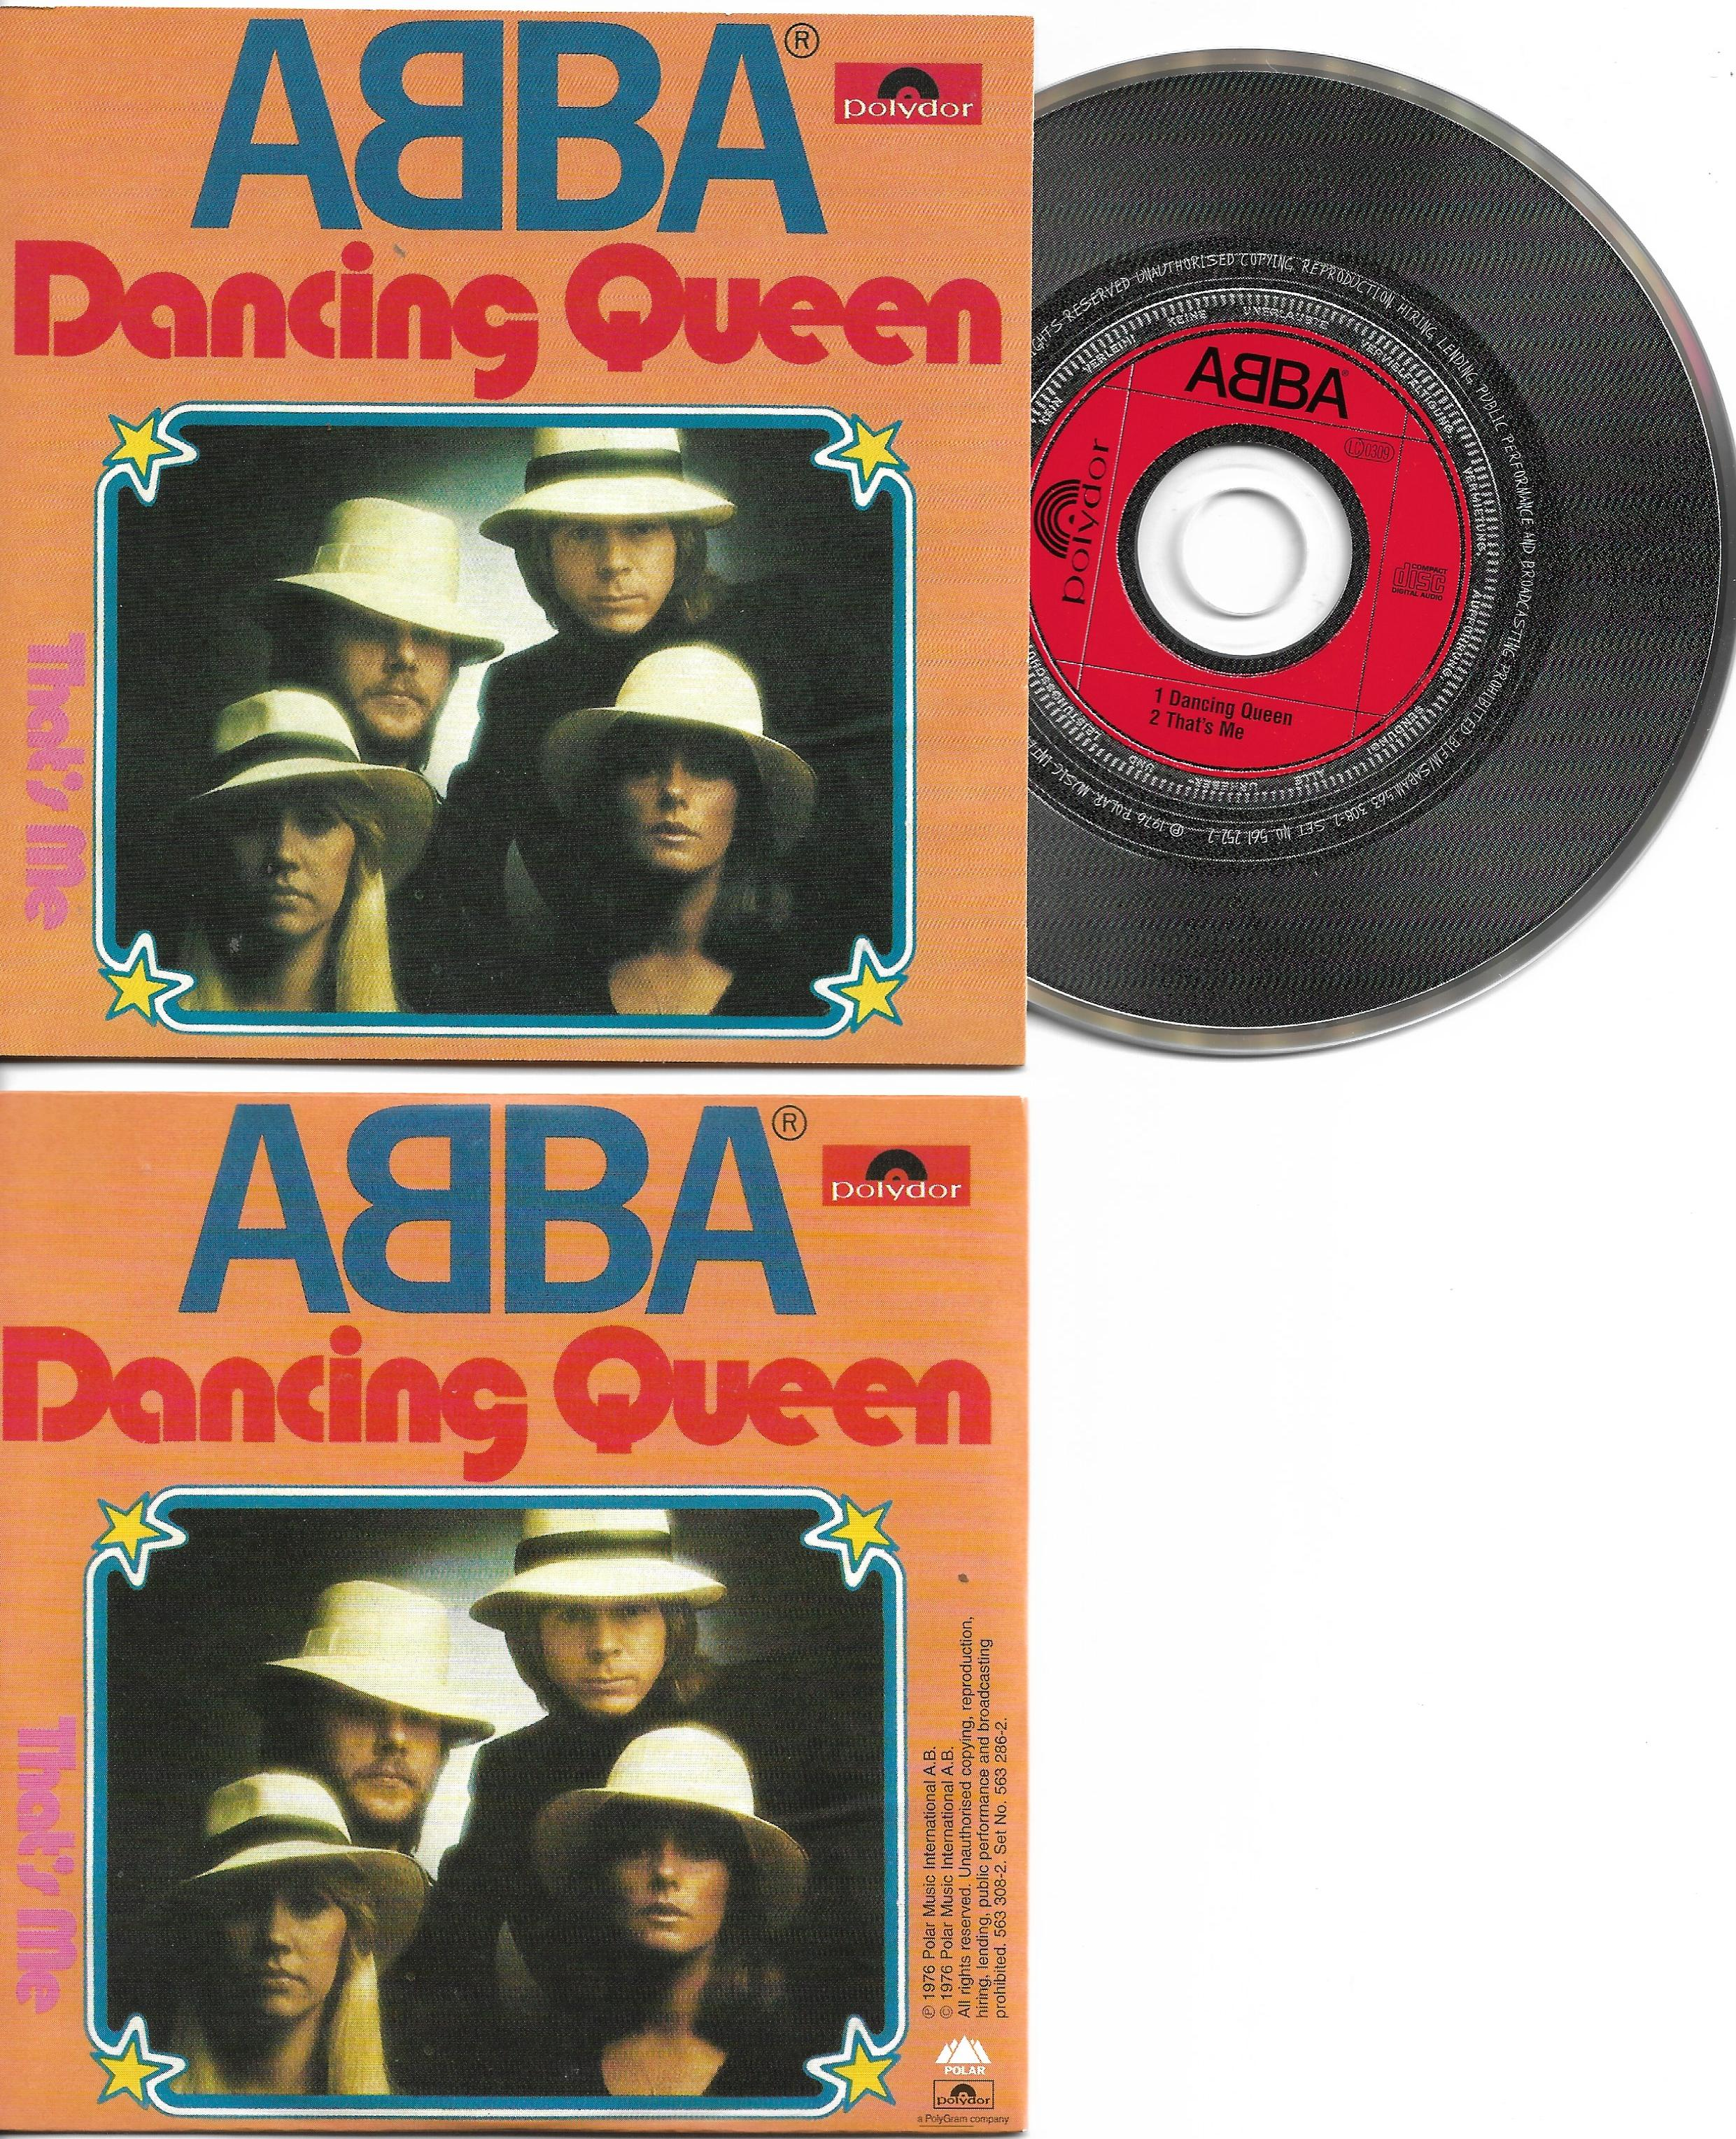 ABBA/A*TEENS - Dancing Queen Lp Vers./ext.vers.